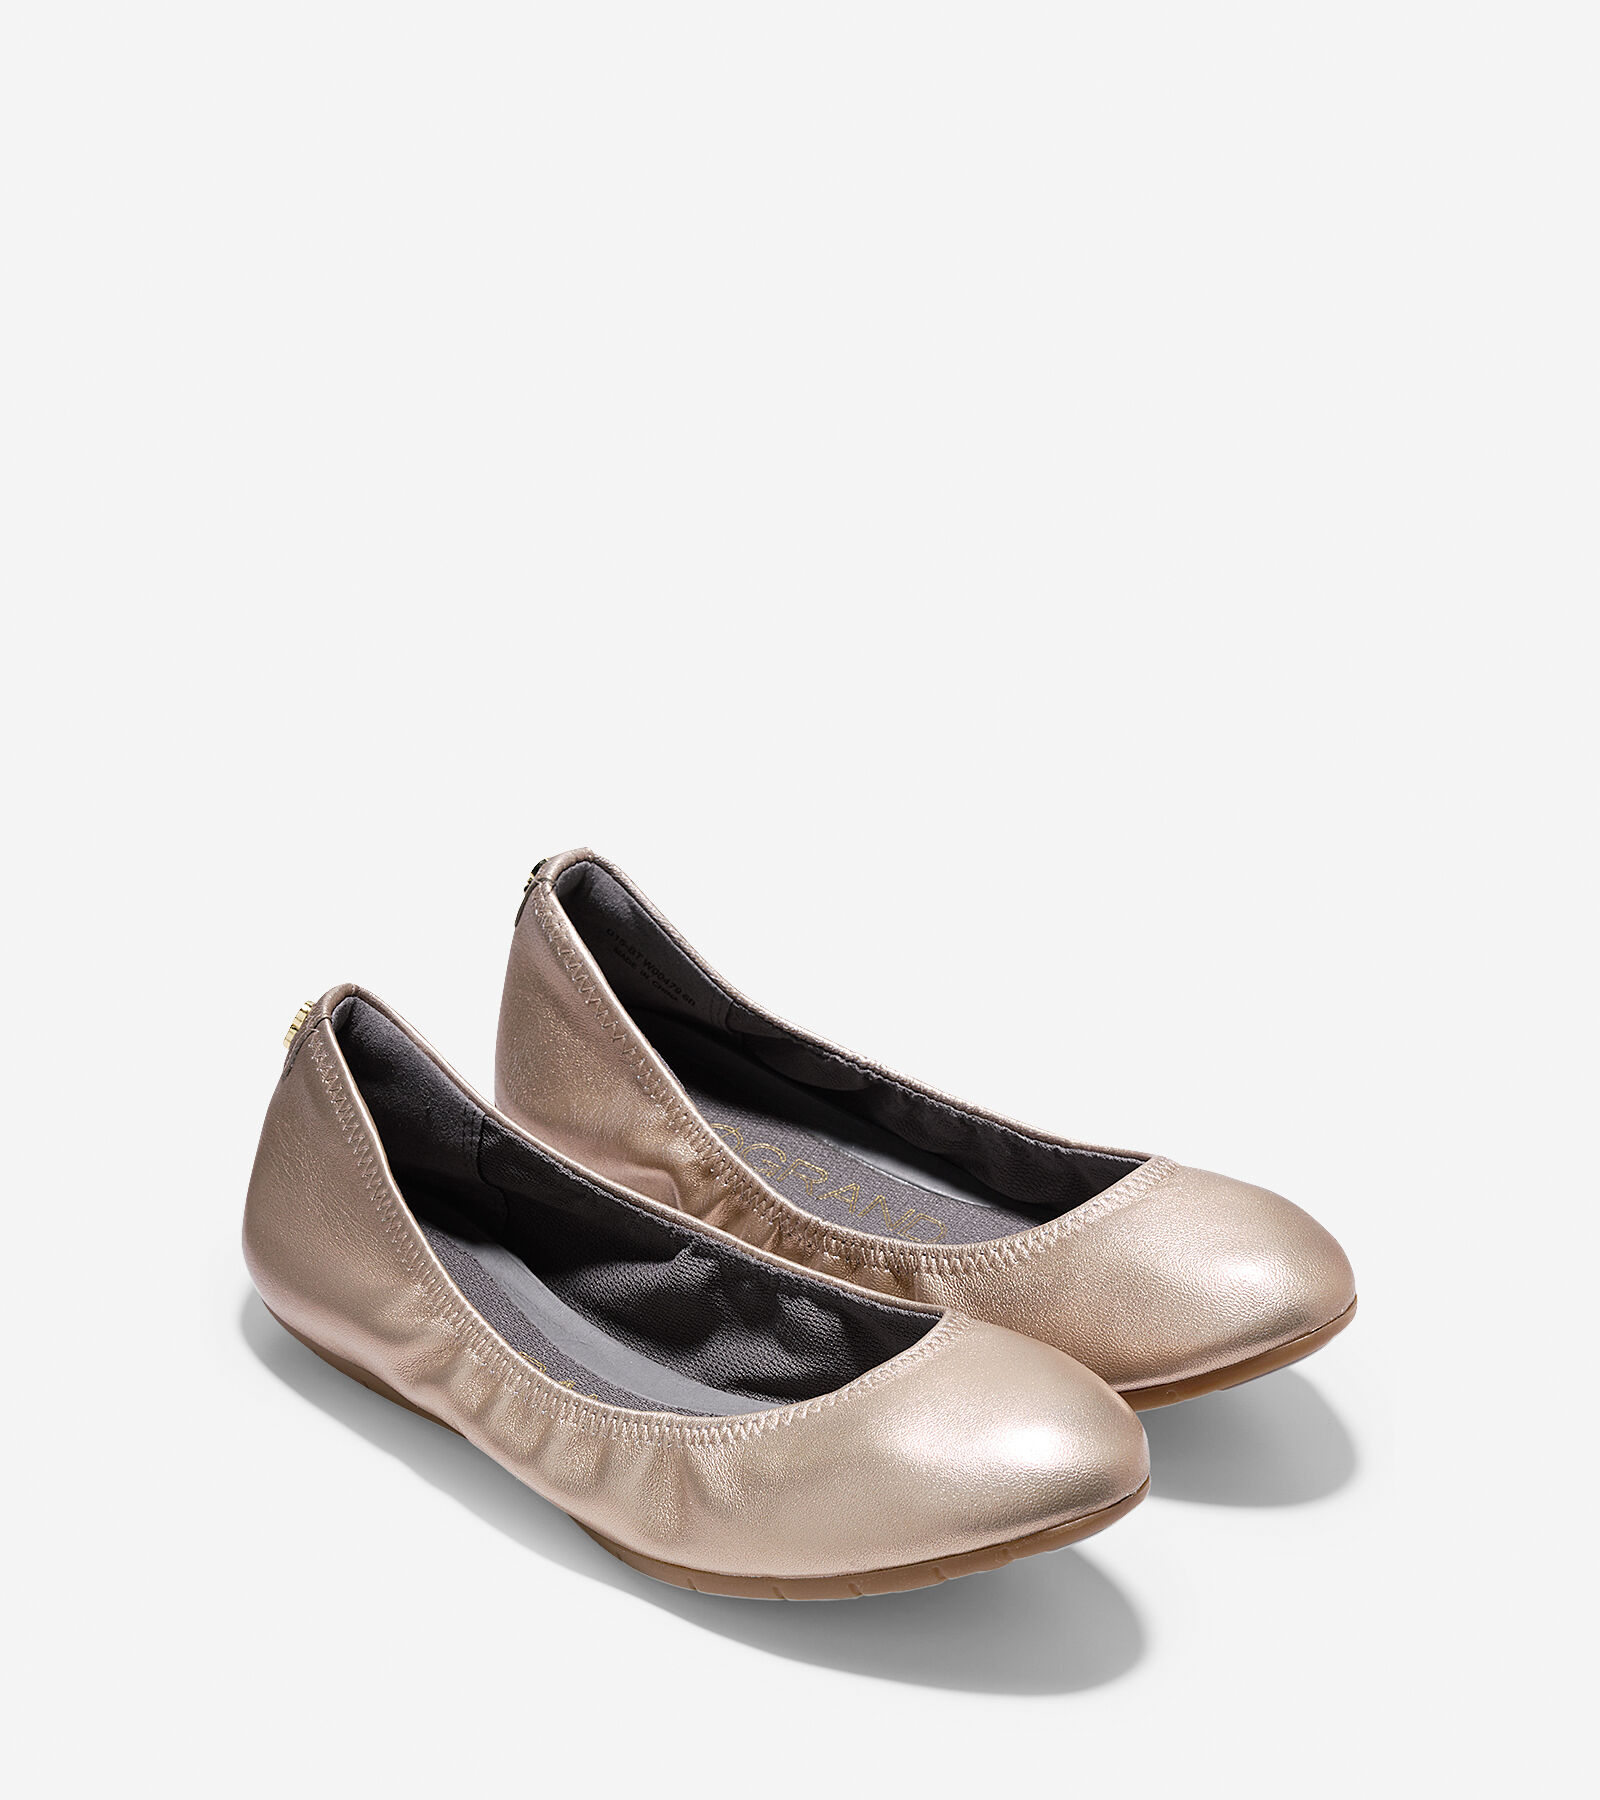 Cole Haan Zerogrand Women's Flats & Oxfords Soft Gold Size 7 M